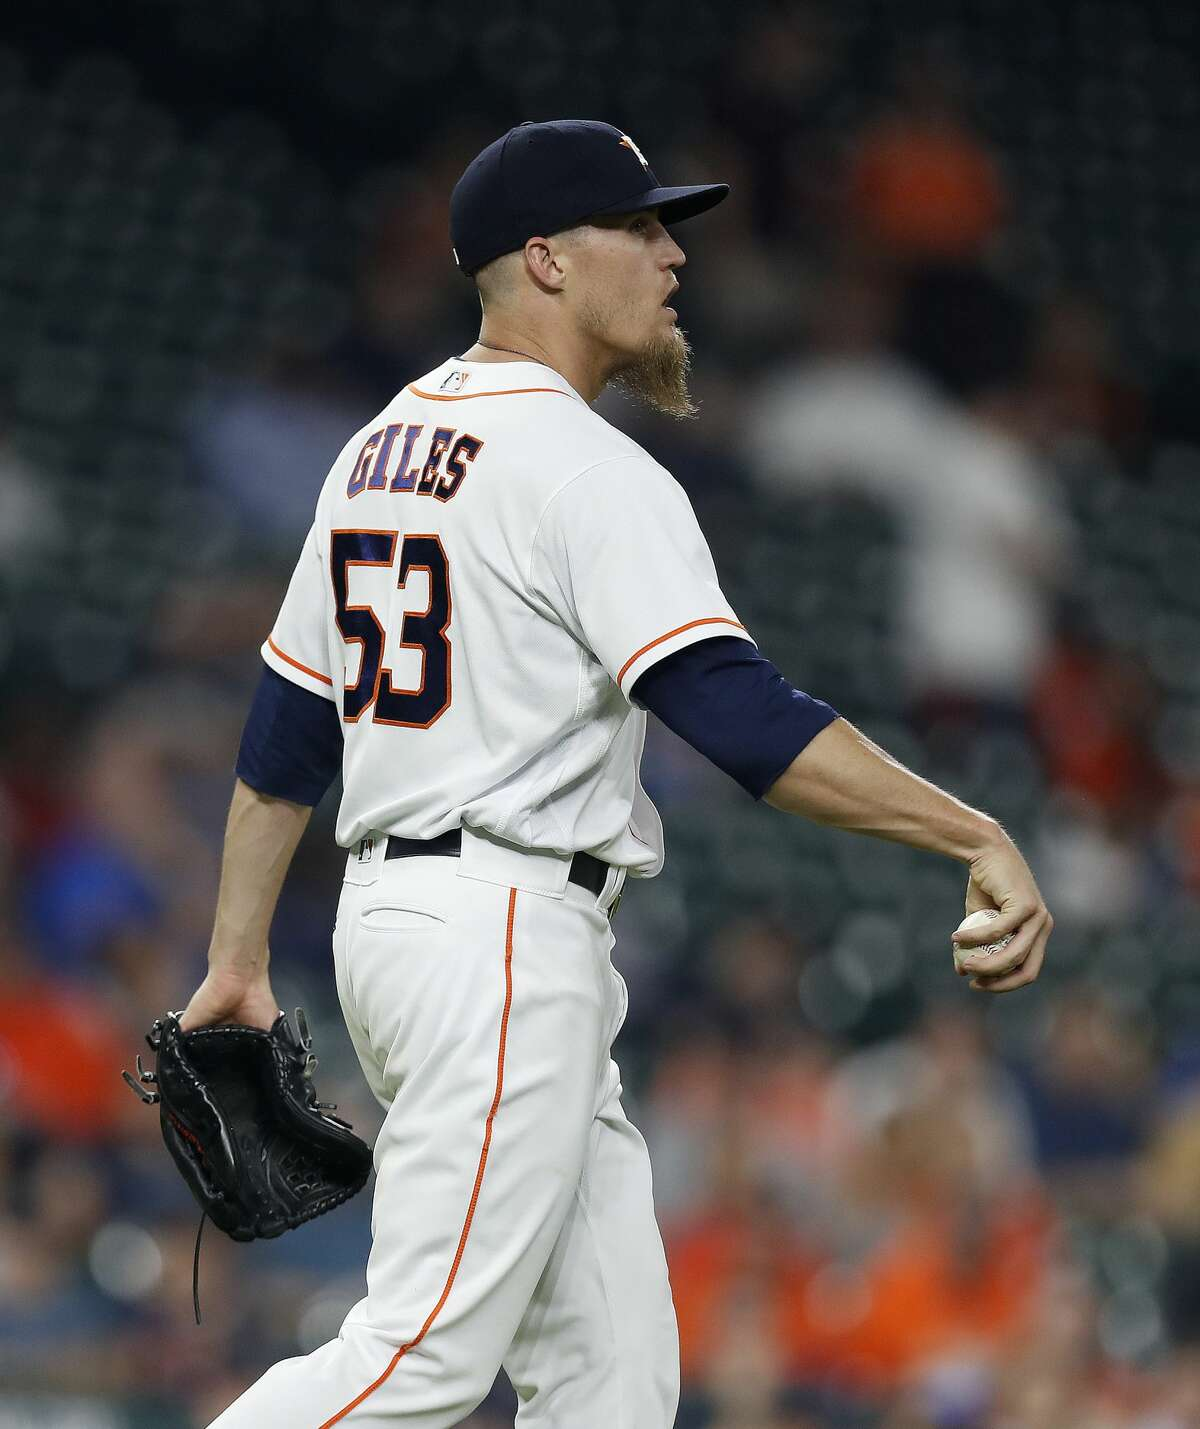 Houston Astros relief pitcher Ken Giles (53) reacts after giving up a run on Seattle Mariners Jarrod Dyson's RBI single in the ninth inning of an MLB baseball game at Minute Maid Park, Thursday, April 6, 2017, in Houston. ( Karen Warren / Houston Chronicle )